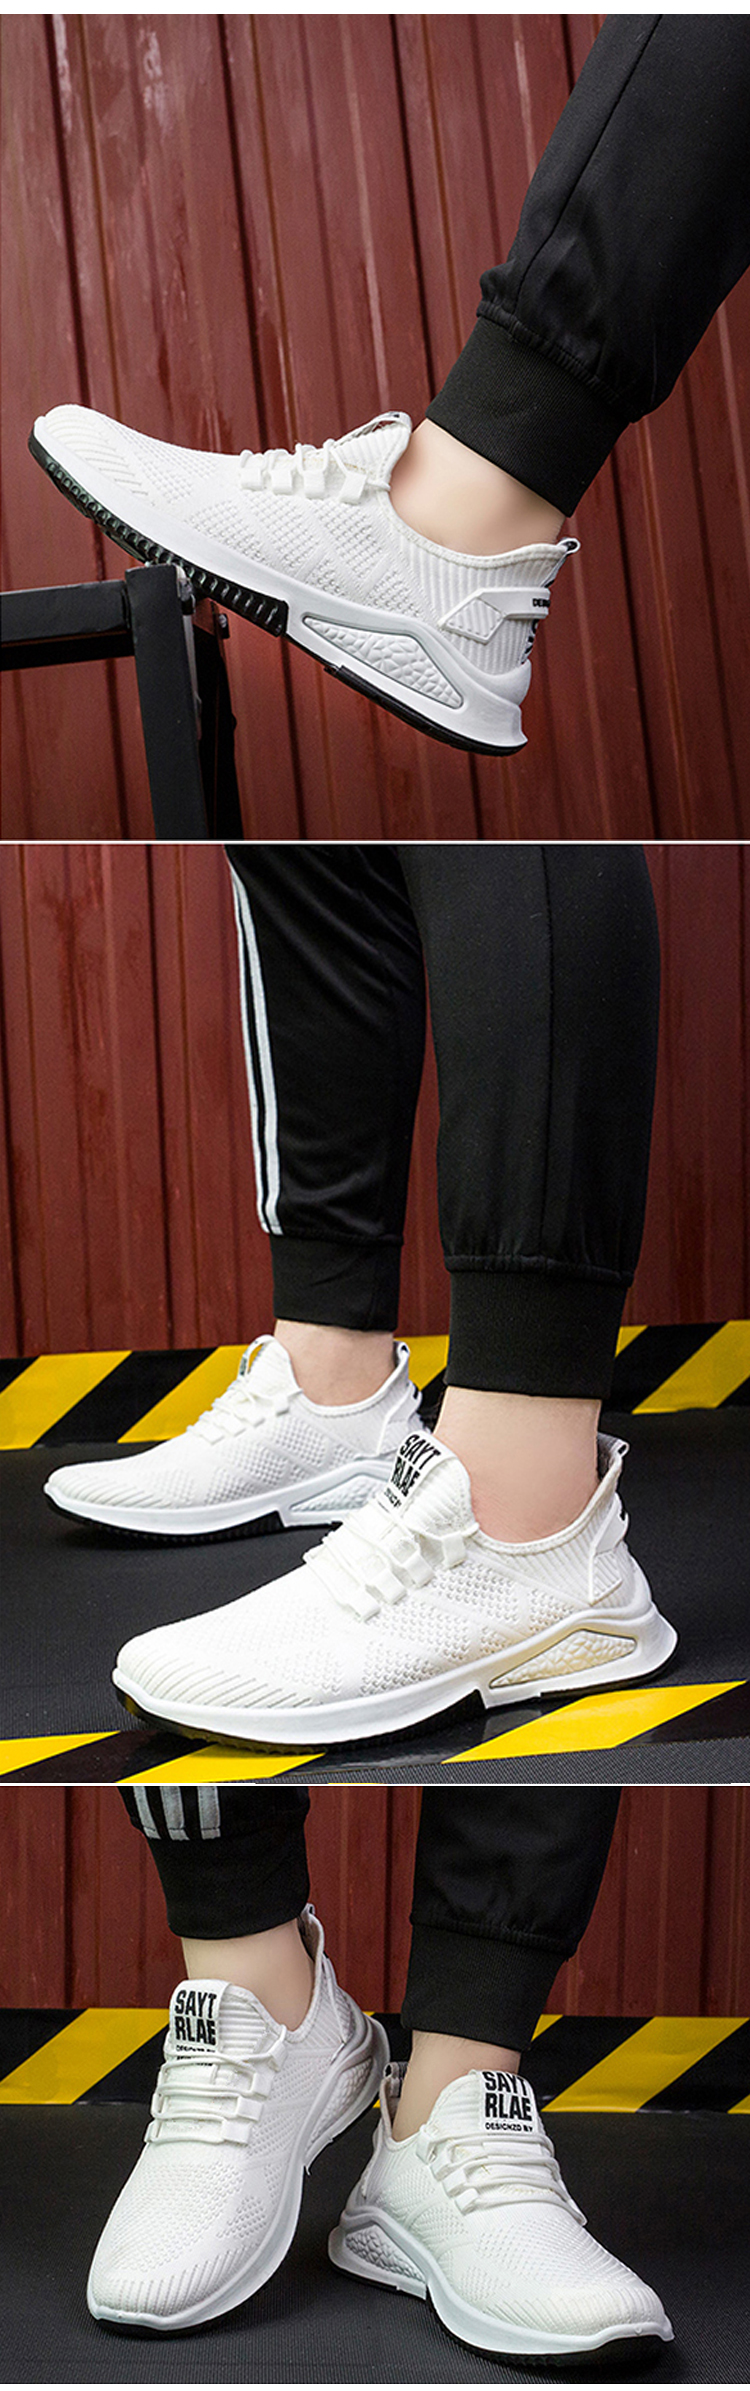 Heydima wholesale modern comfortable sneakers male customize men's fashion sneakers casual shoes